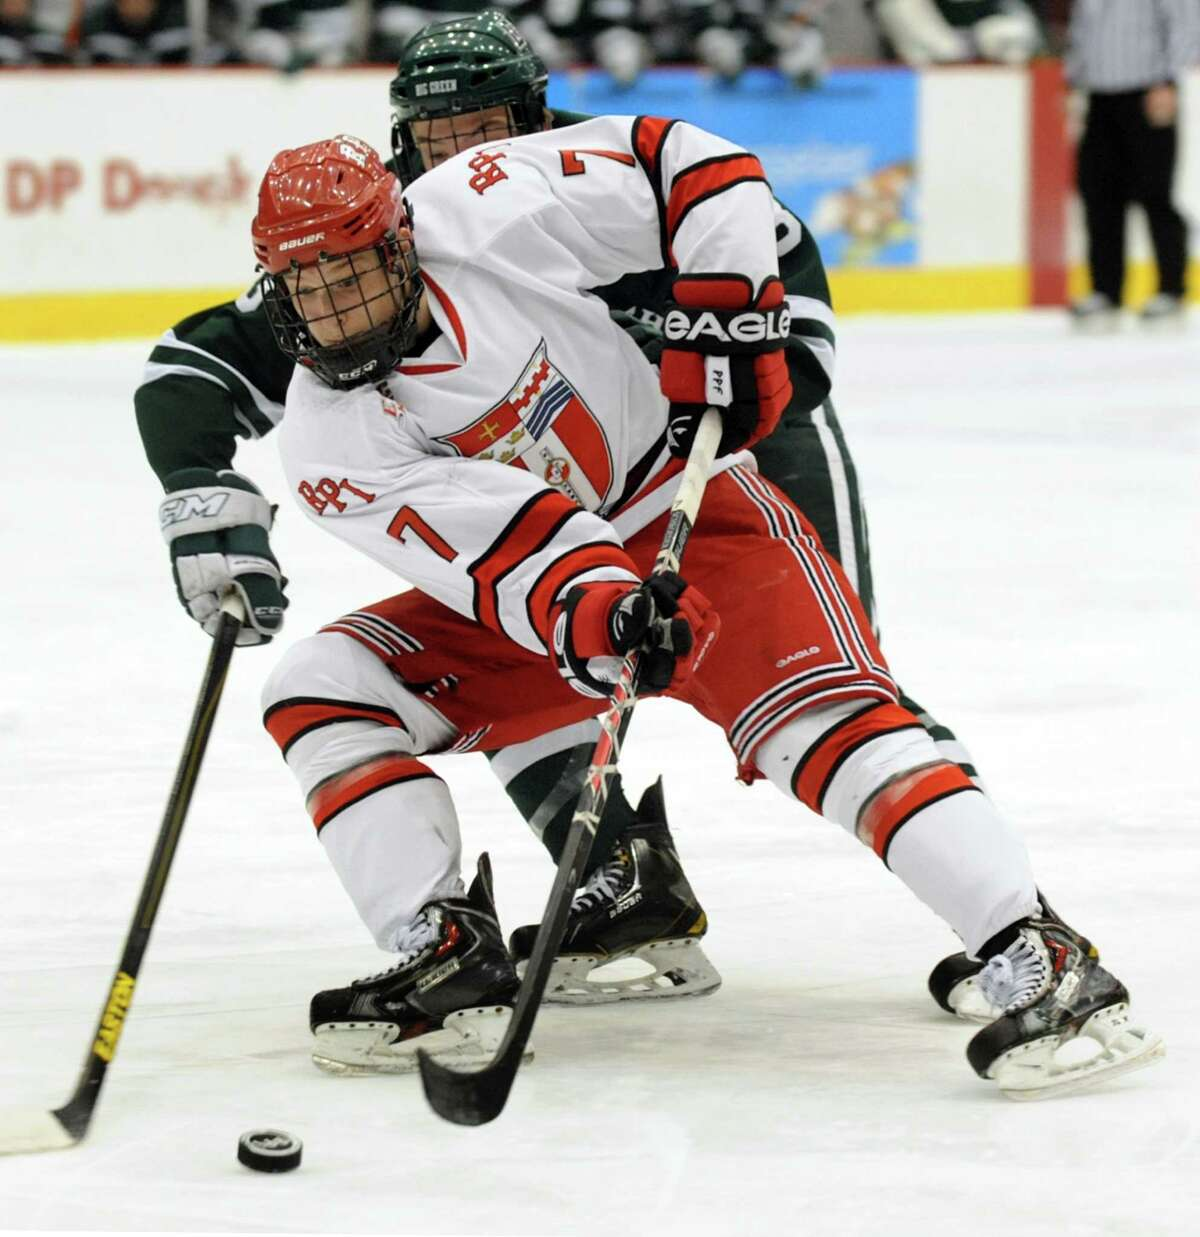 RPI's Zach Schroeder, left, maneuvers the puck as Dartmouth's Josh Hartley defends during their hockey game on Friday, Jan. 24, 2014, at Houston Field House in Troy, N.Y. (Cindy Schultz / Times Union)